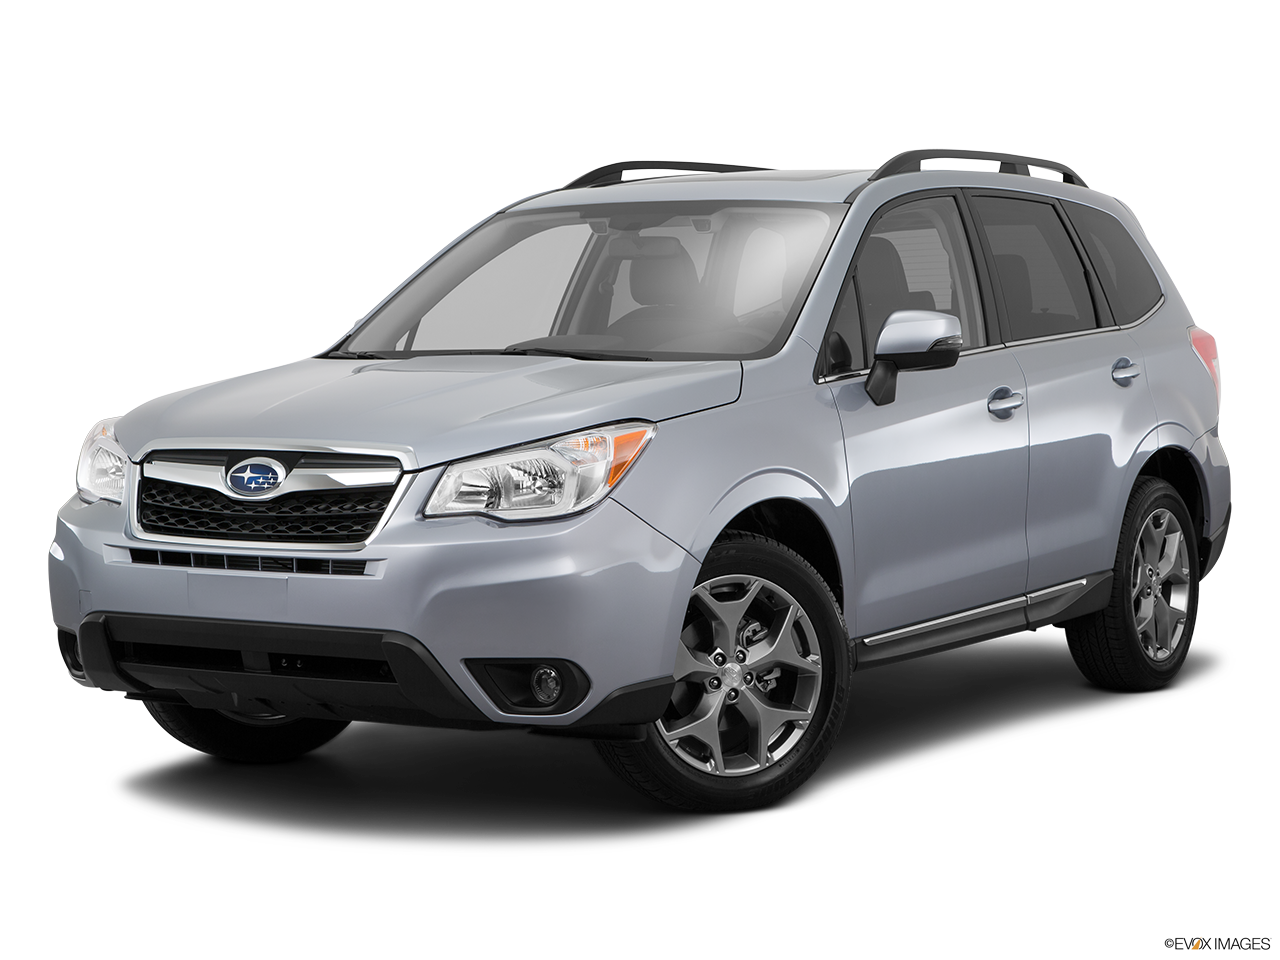 2016 Subaru Forester dealer serving Detroit.